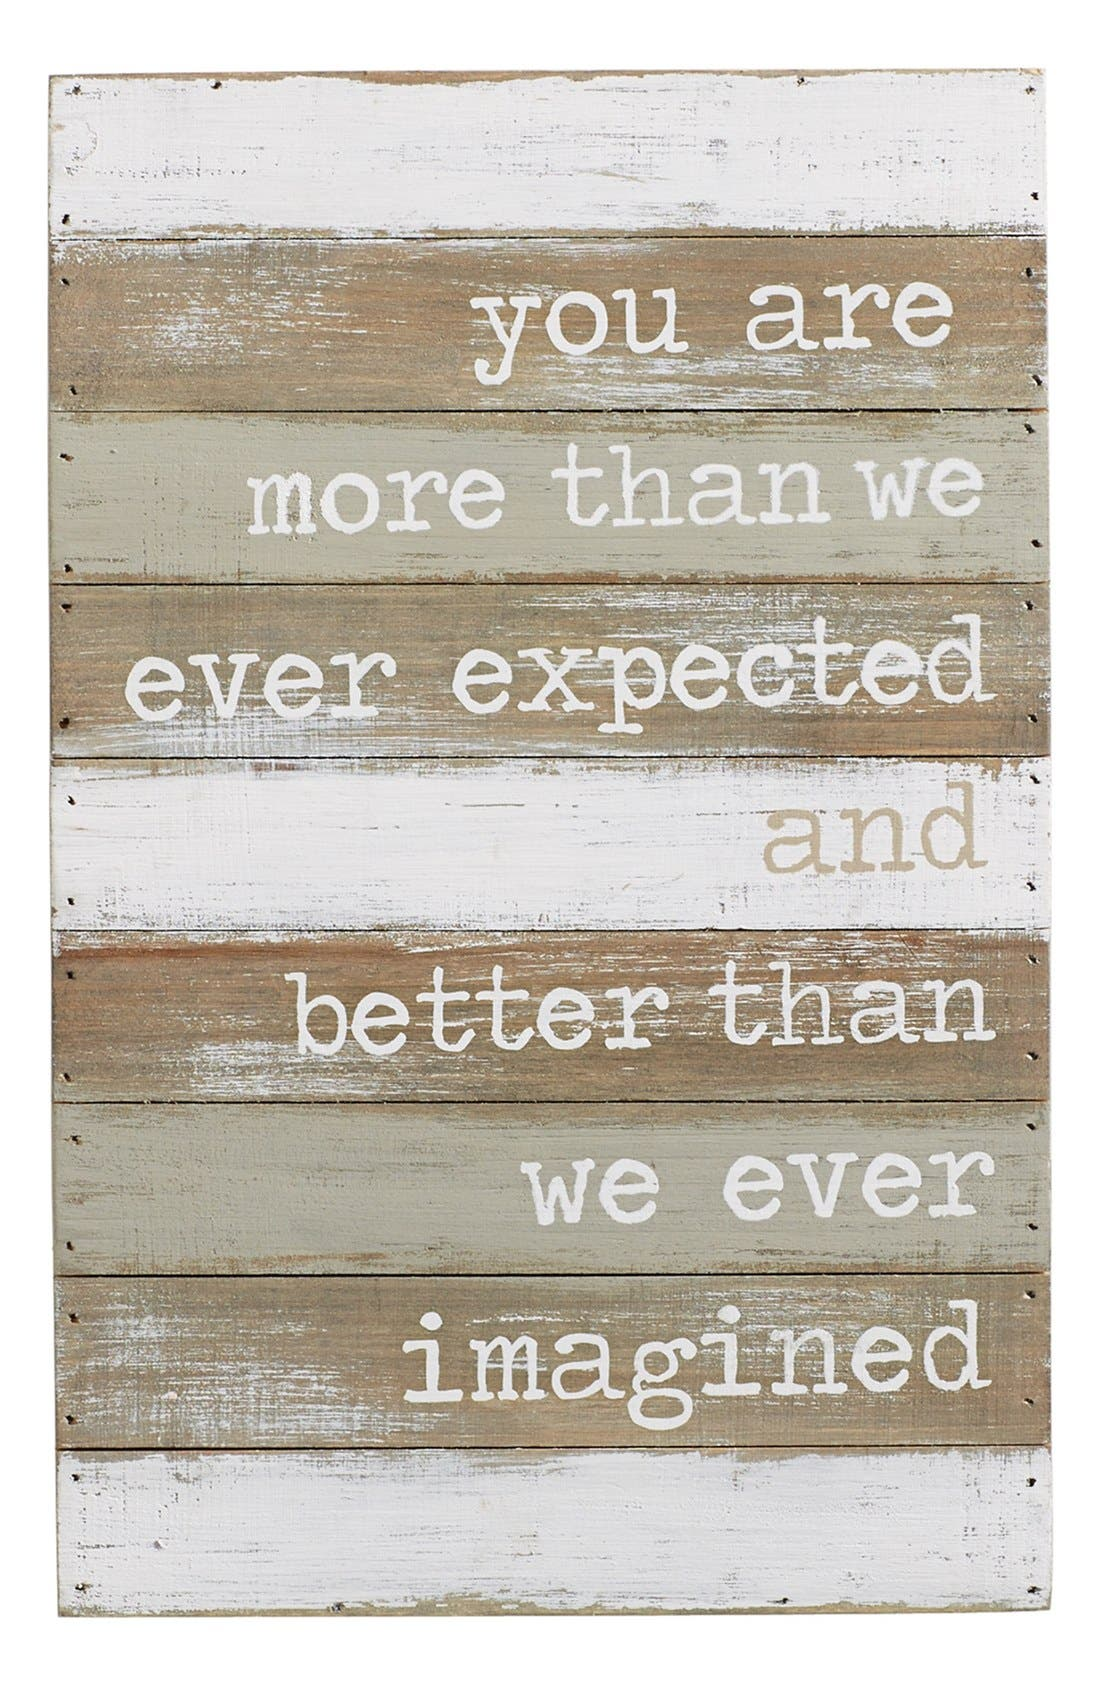 Alternate Image 1 Selected - Mud Pie 'Better Than We Ever Imagined' Wood Wall Art